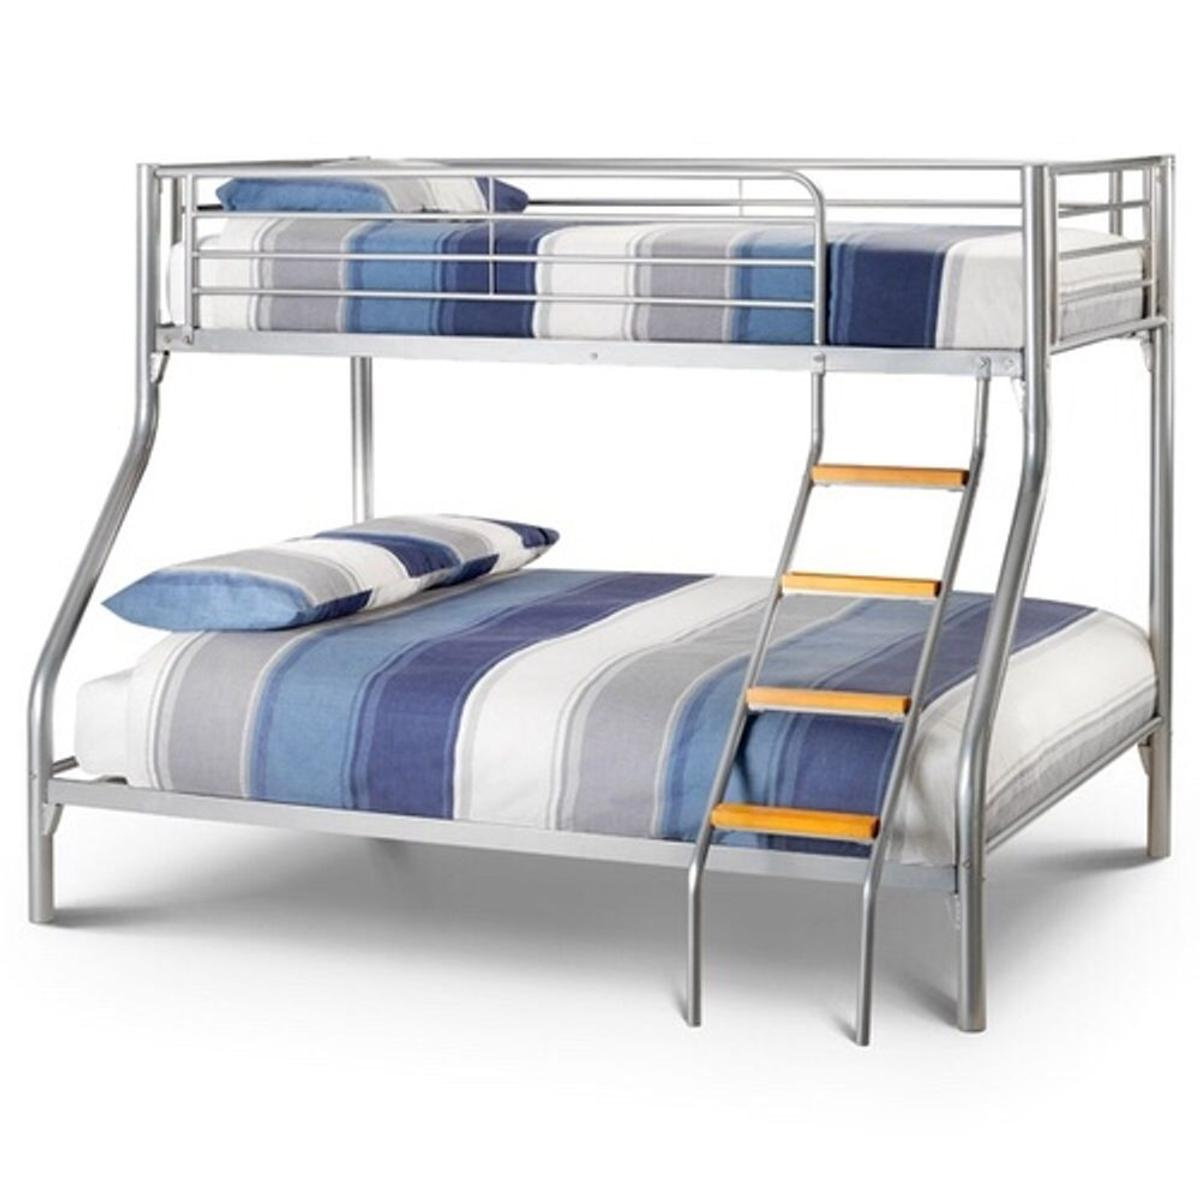 Picture of: Triple Sleeper Bunk Bed Single Aloft Double In Ls122ua Leeds For 249 99 For Sale Shpock